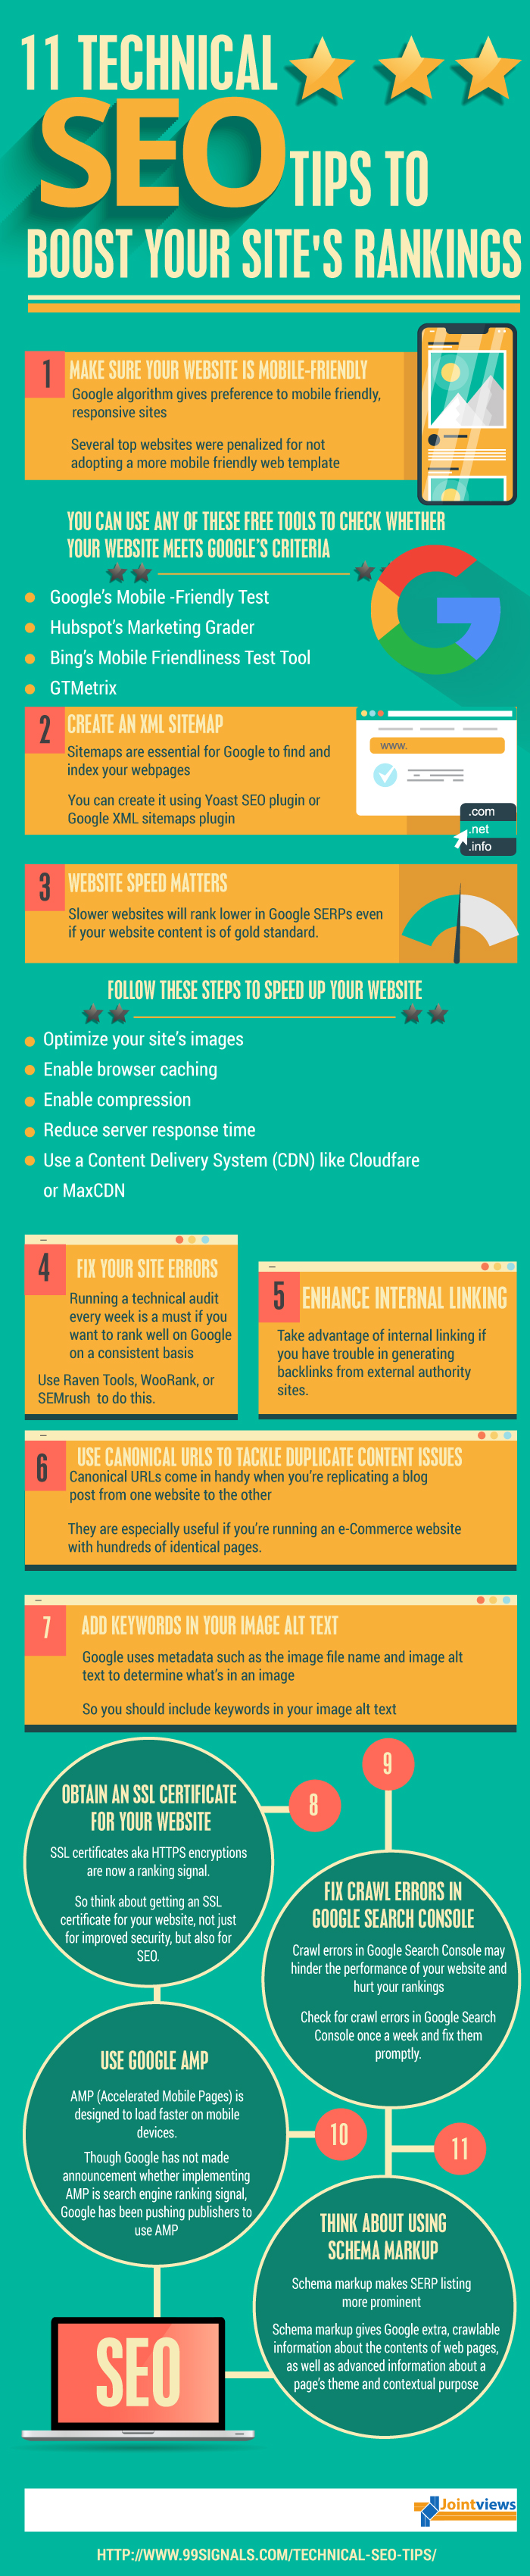 technical seo tips infographic